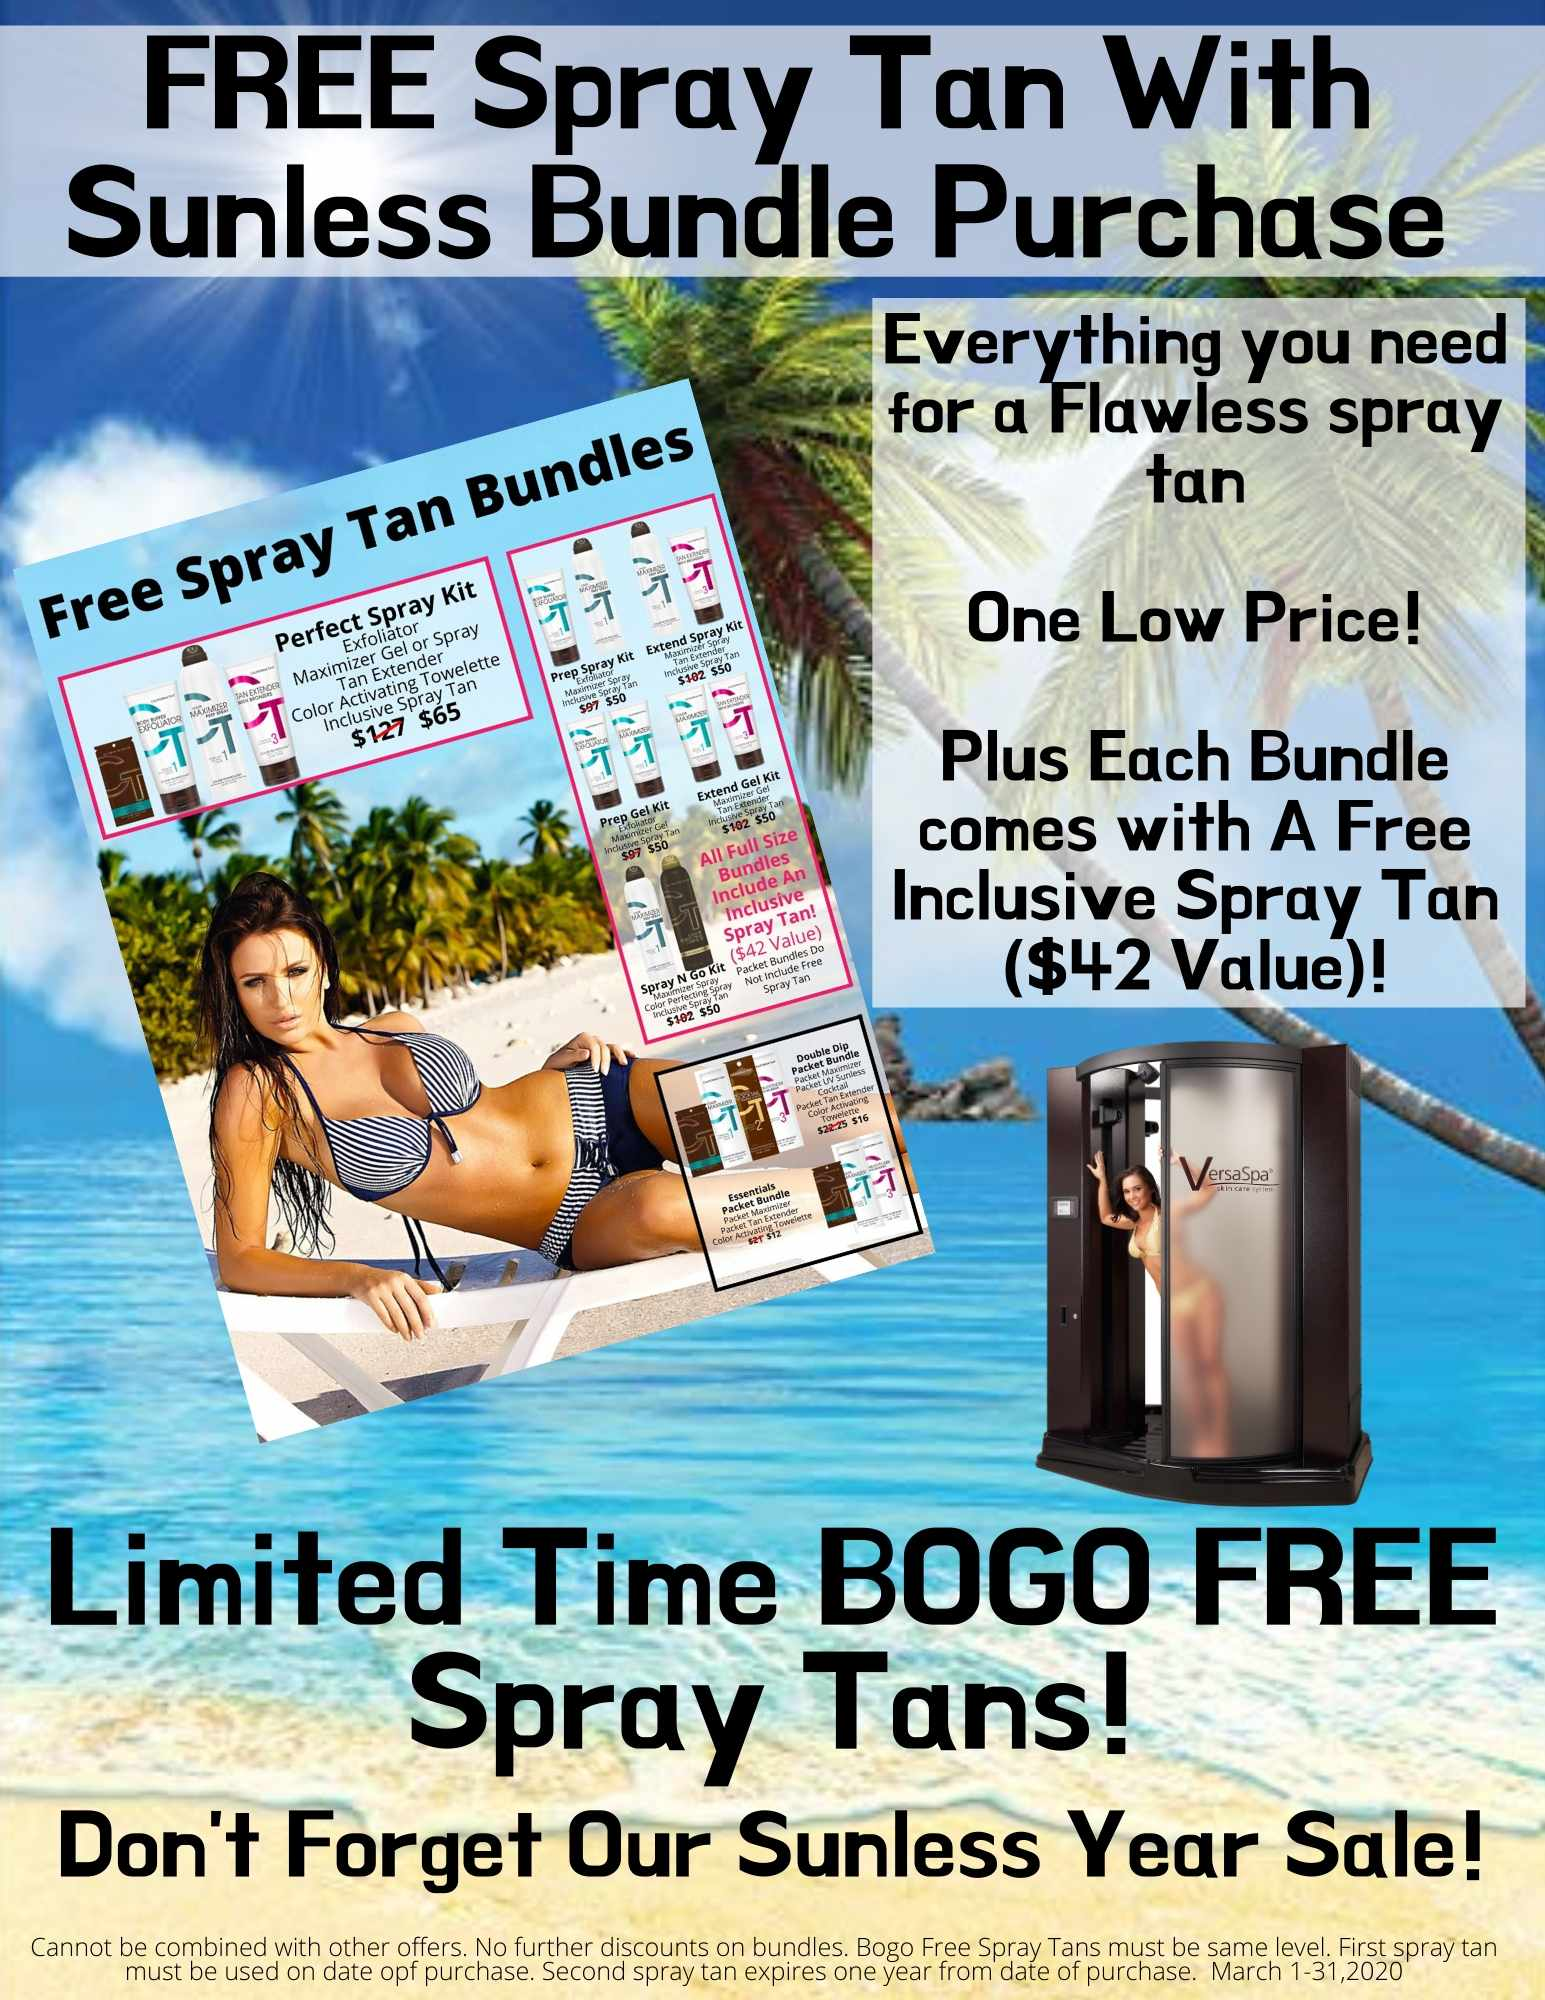 FREE Spray Tan With Sunless Bundle Purchase